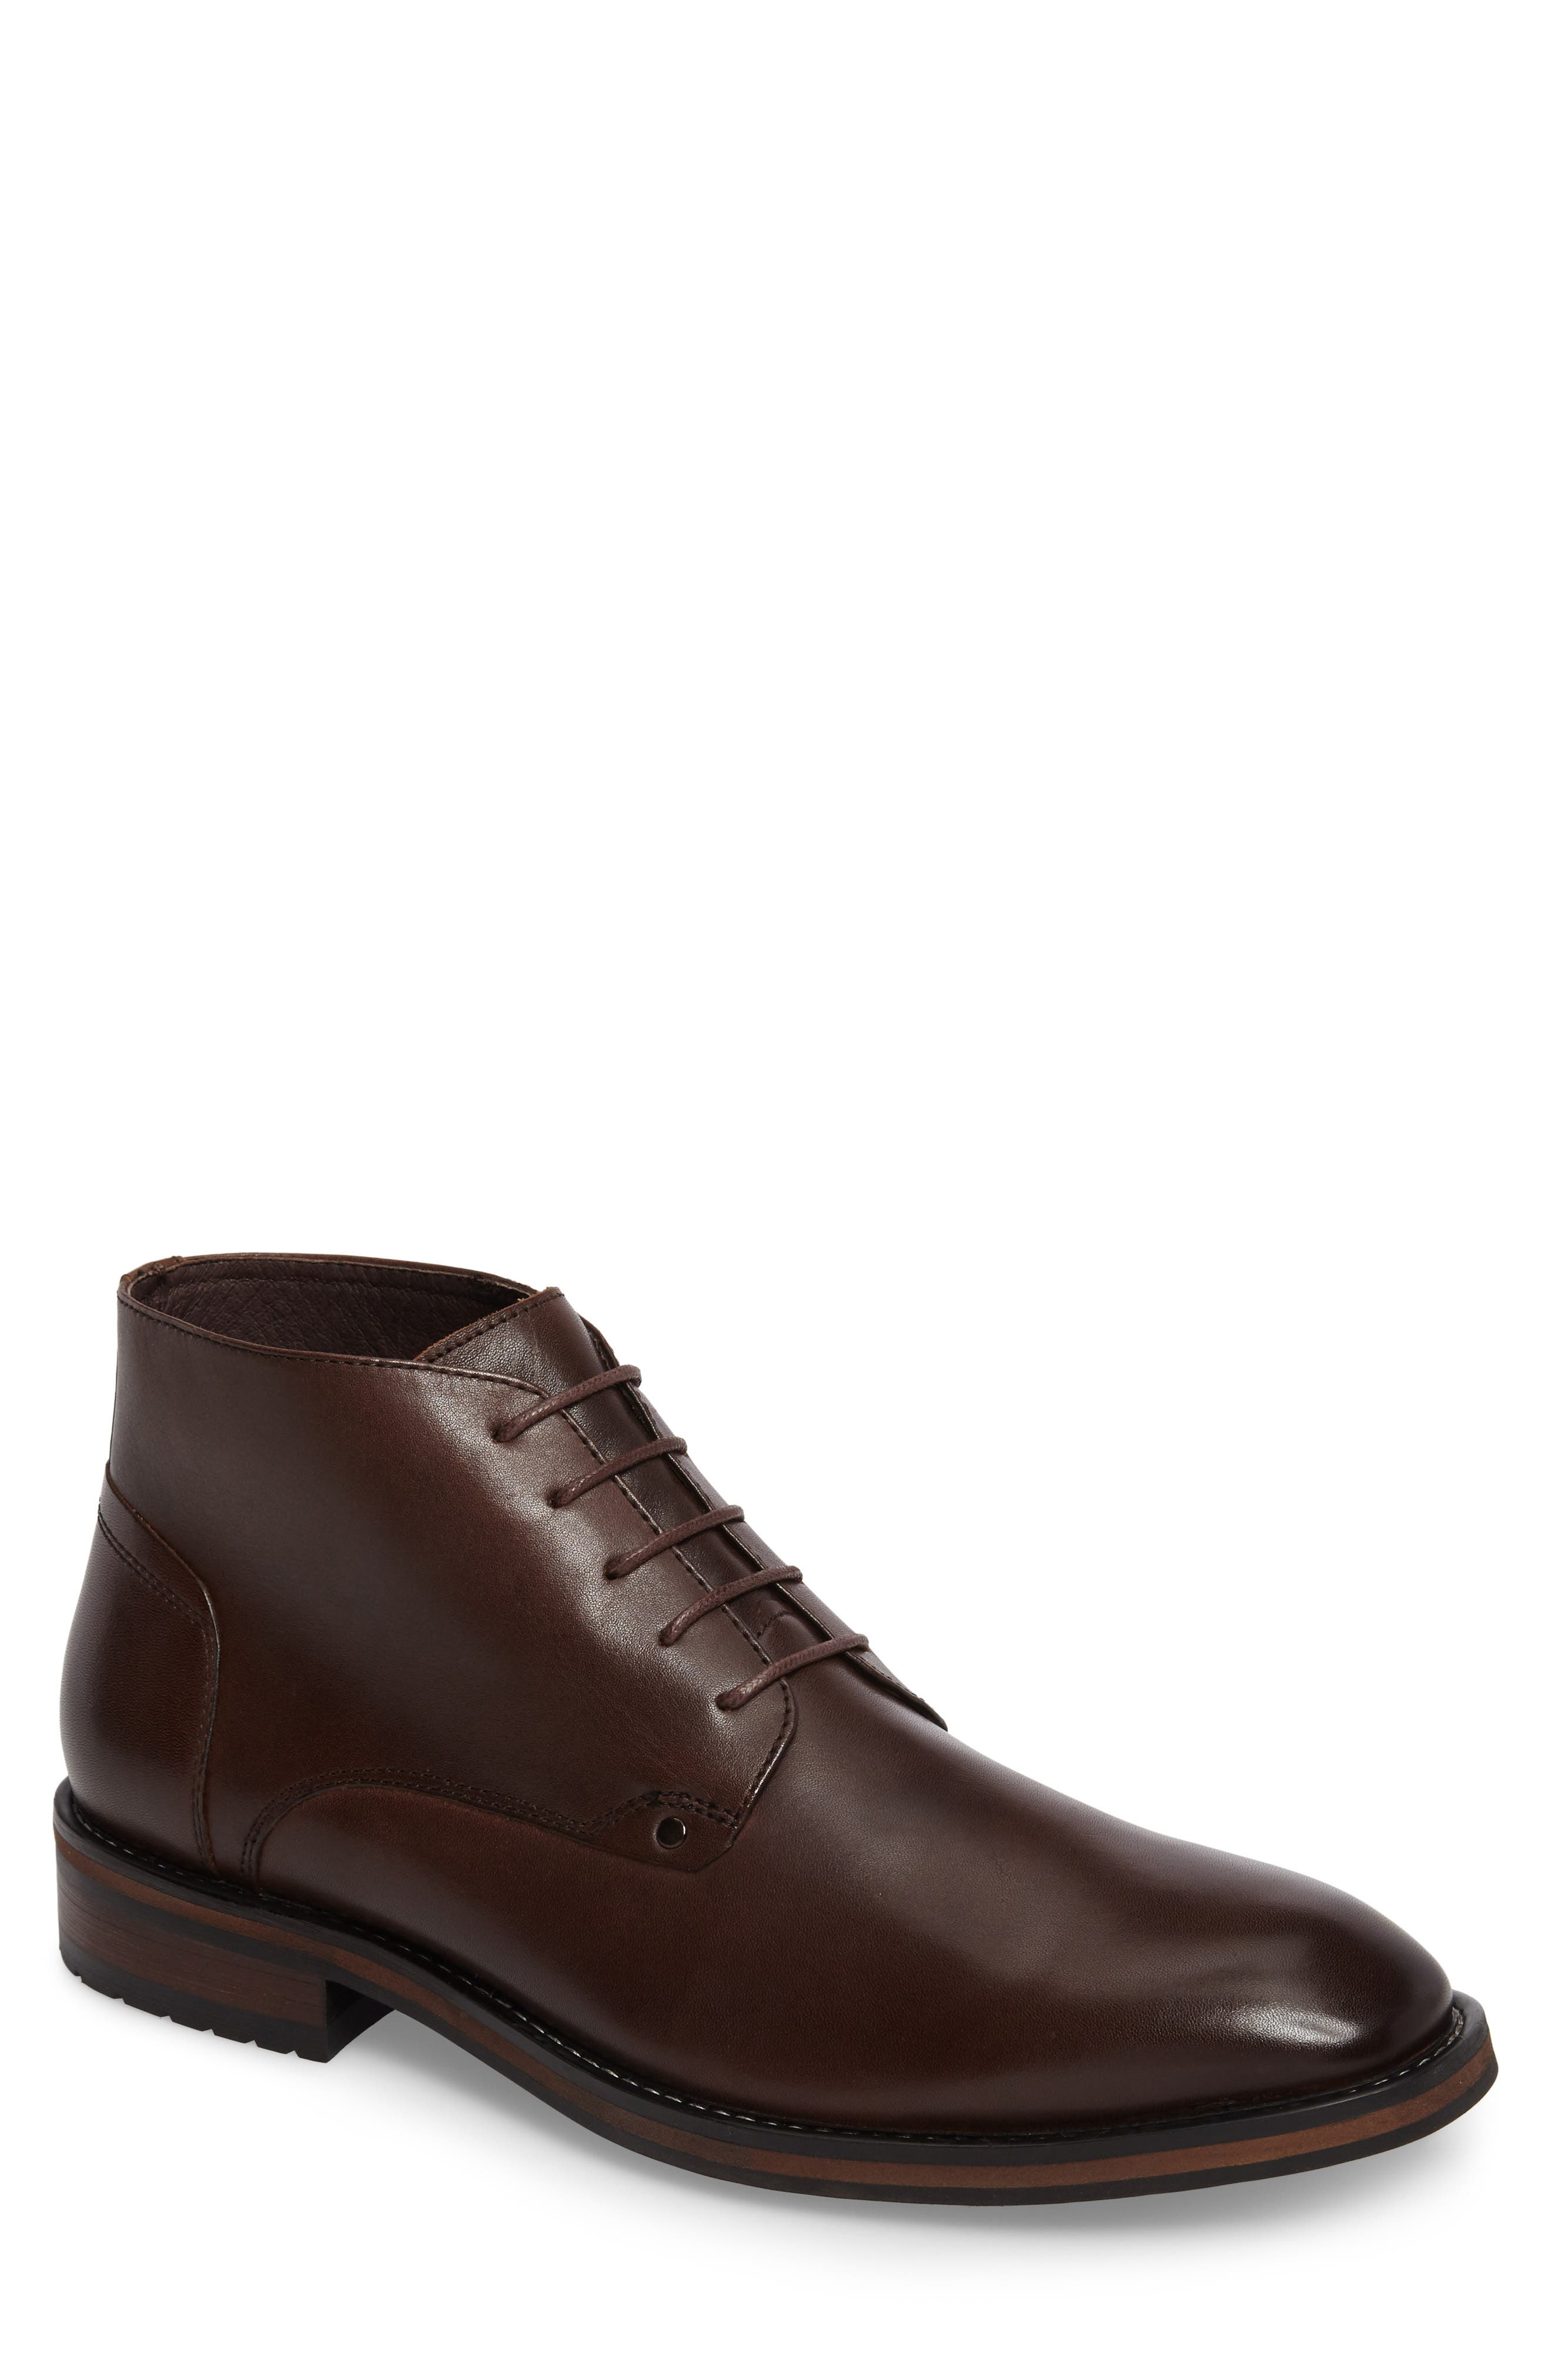 Malta Low Boot,                             Main thumbnail 1, color,                             Brown Leather